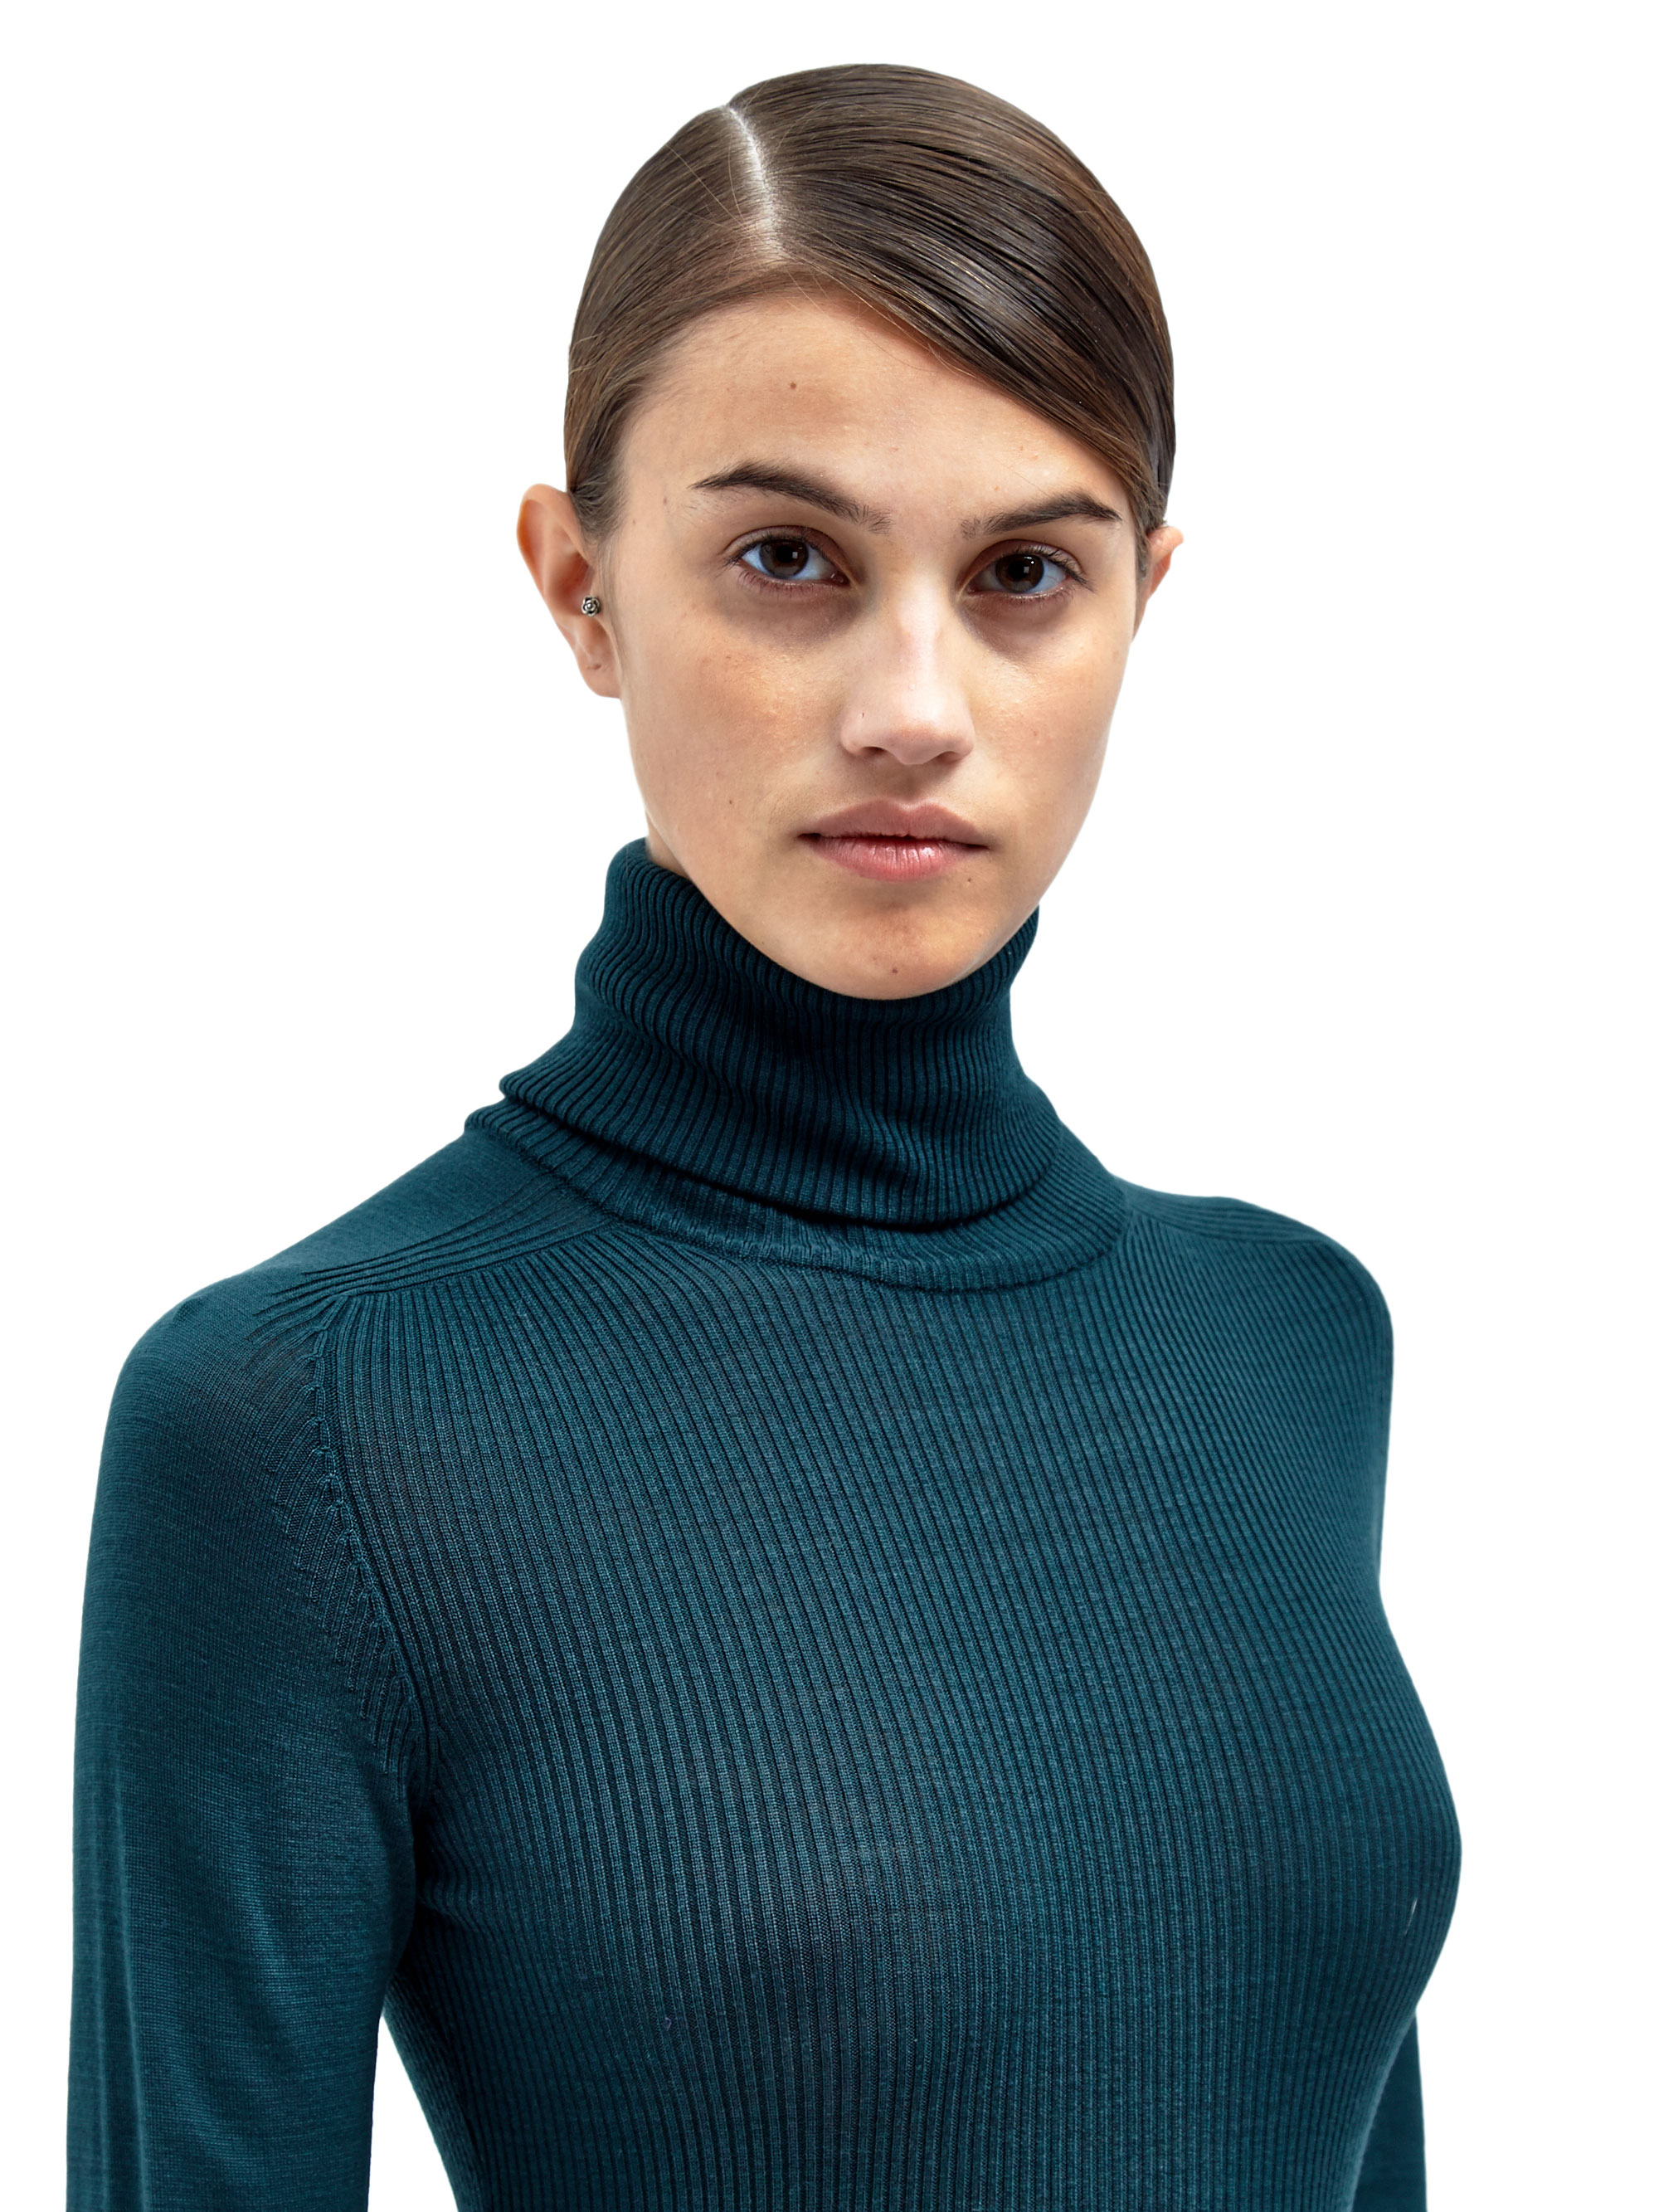 Lanvin Womens Knitted Turtle Neck Top in Green